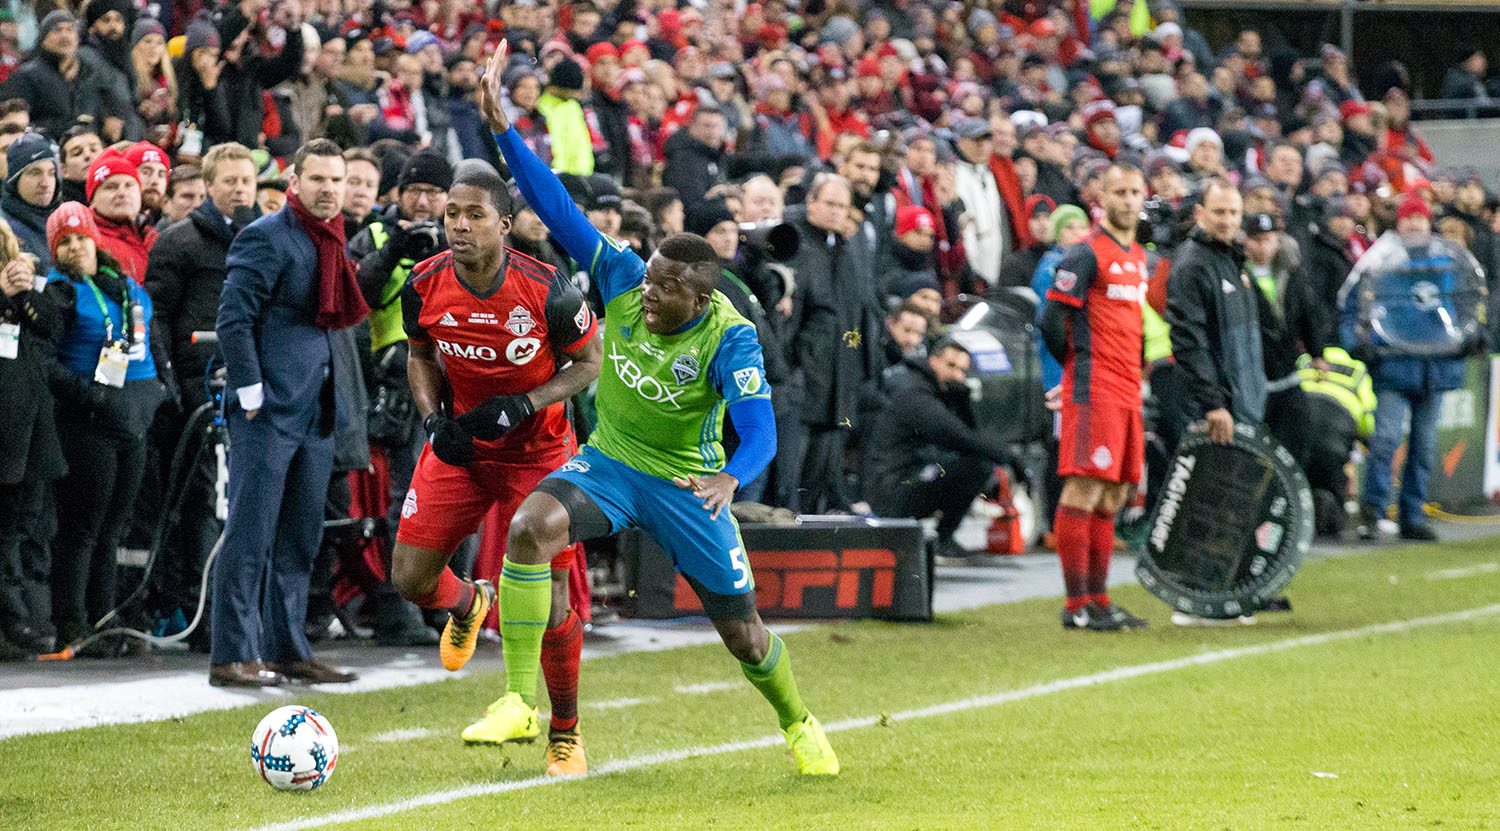 Greg Vanney looks on as Toronto FC and Seattle Sounders players battle for the ball near the coaching area.Image by Dennis Marciniak of denMAR Media.